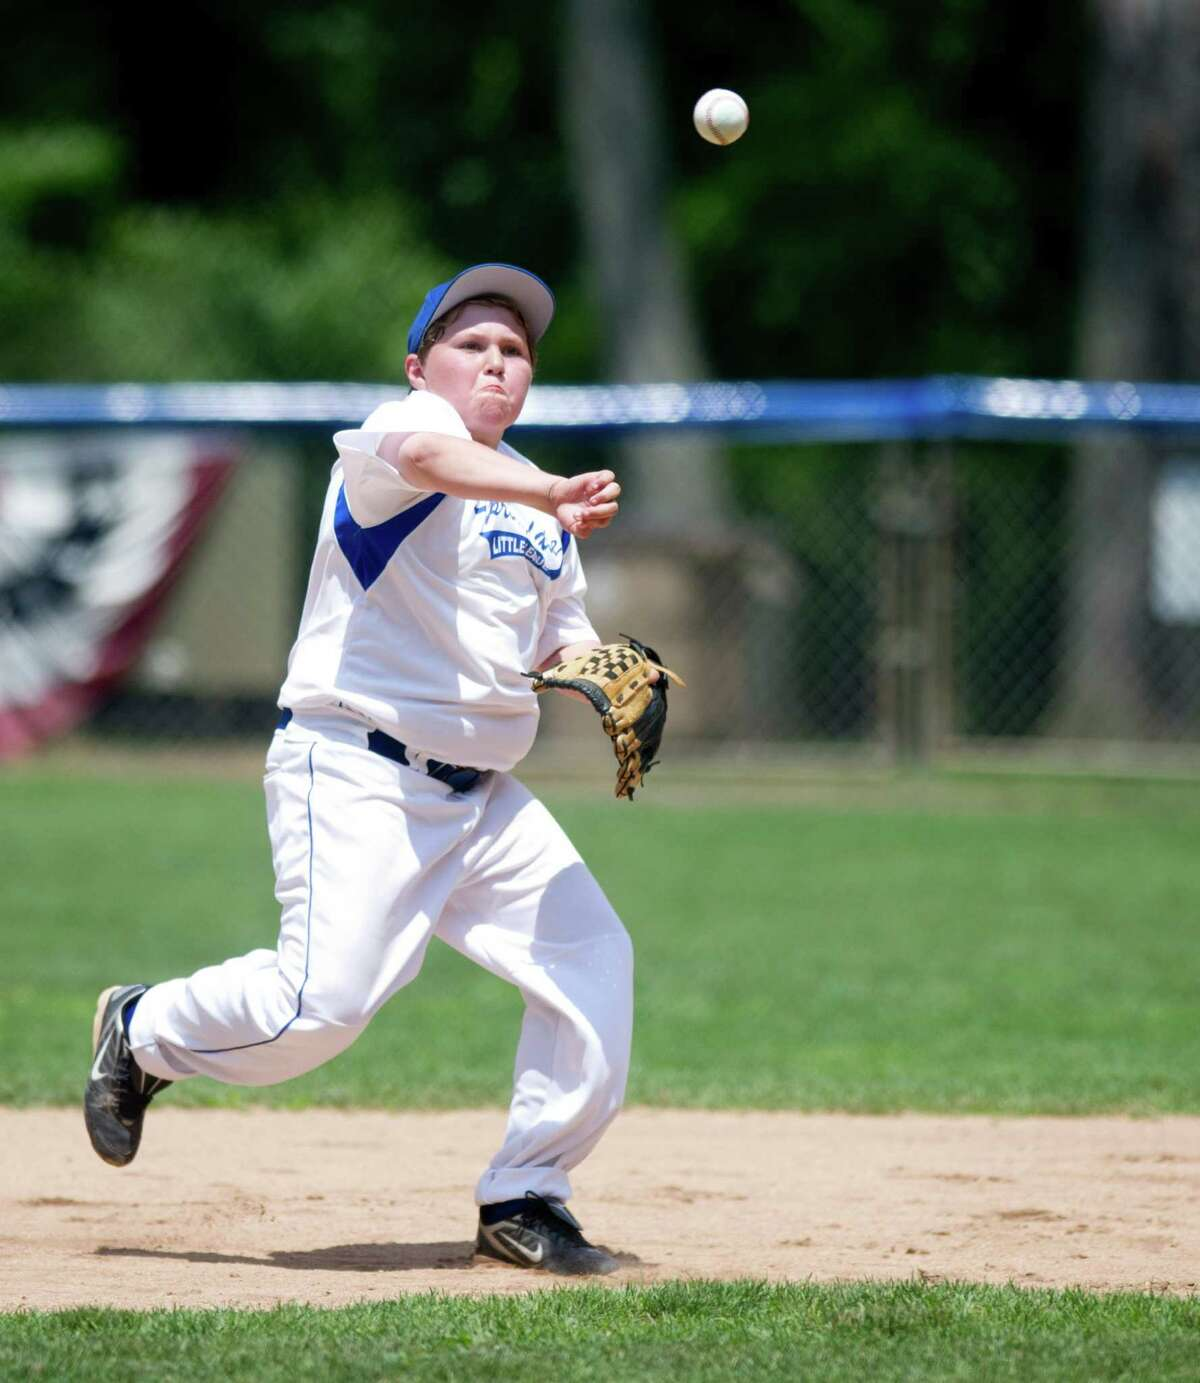 Springdale's Ryan Lionetti throws to first for an out during Saturday's Little League game between North Stamford and Springdale on June 29, 2013.